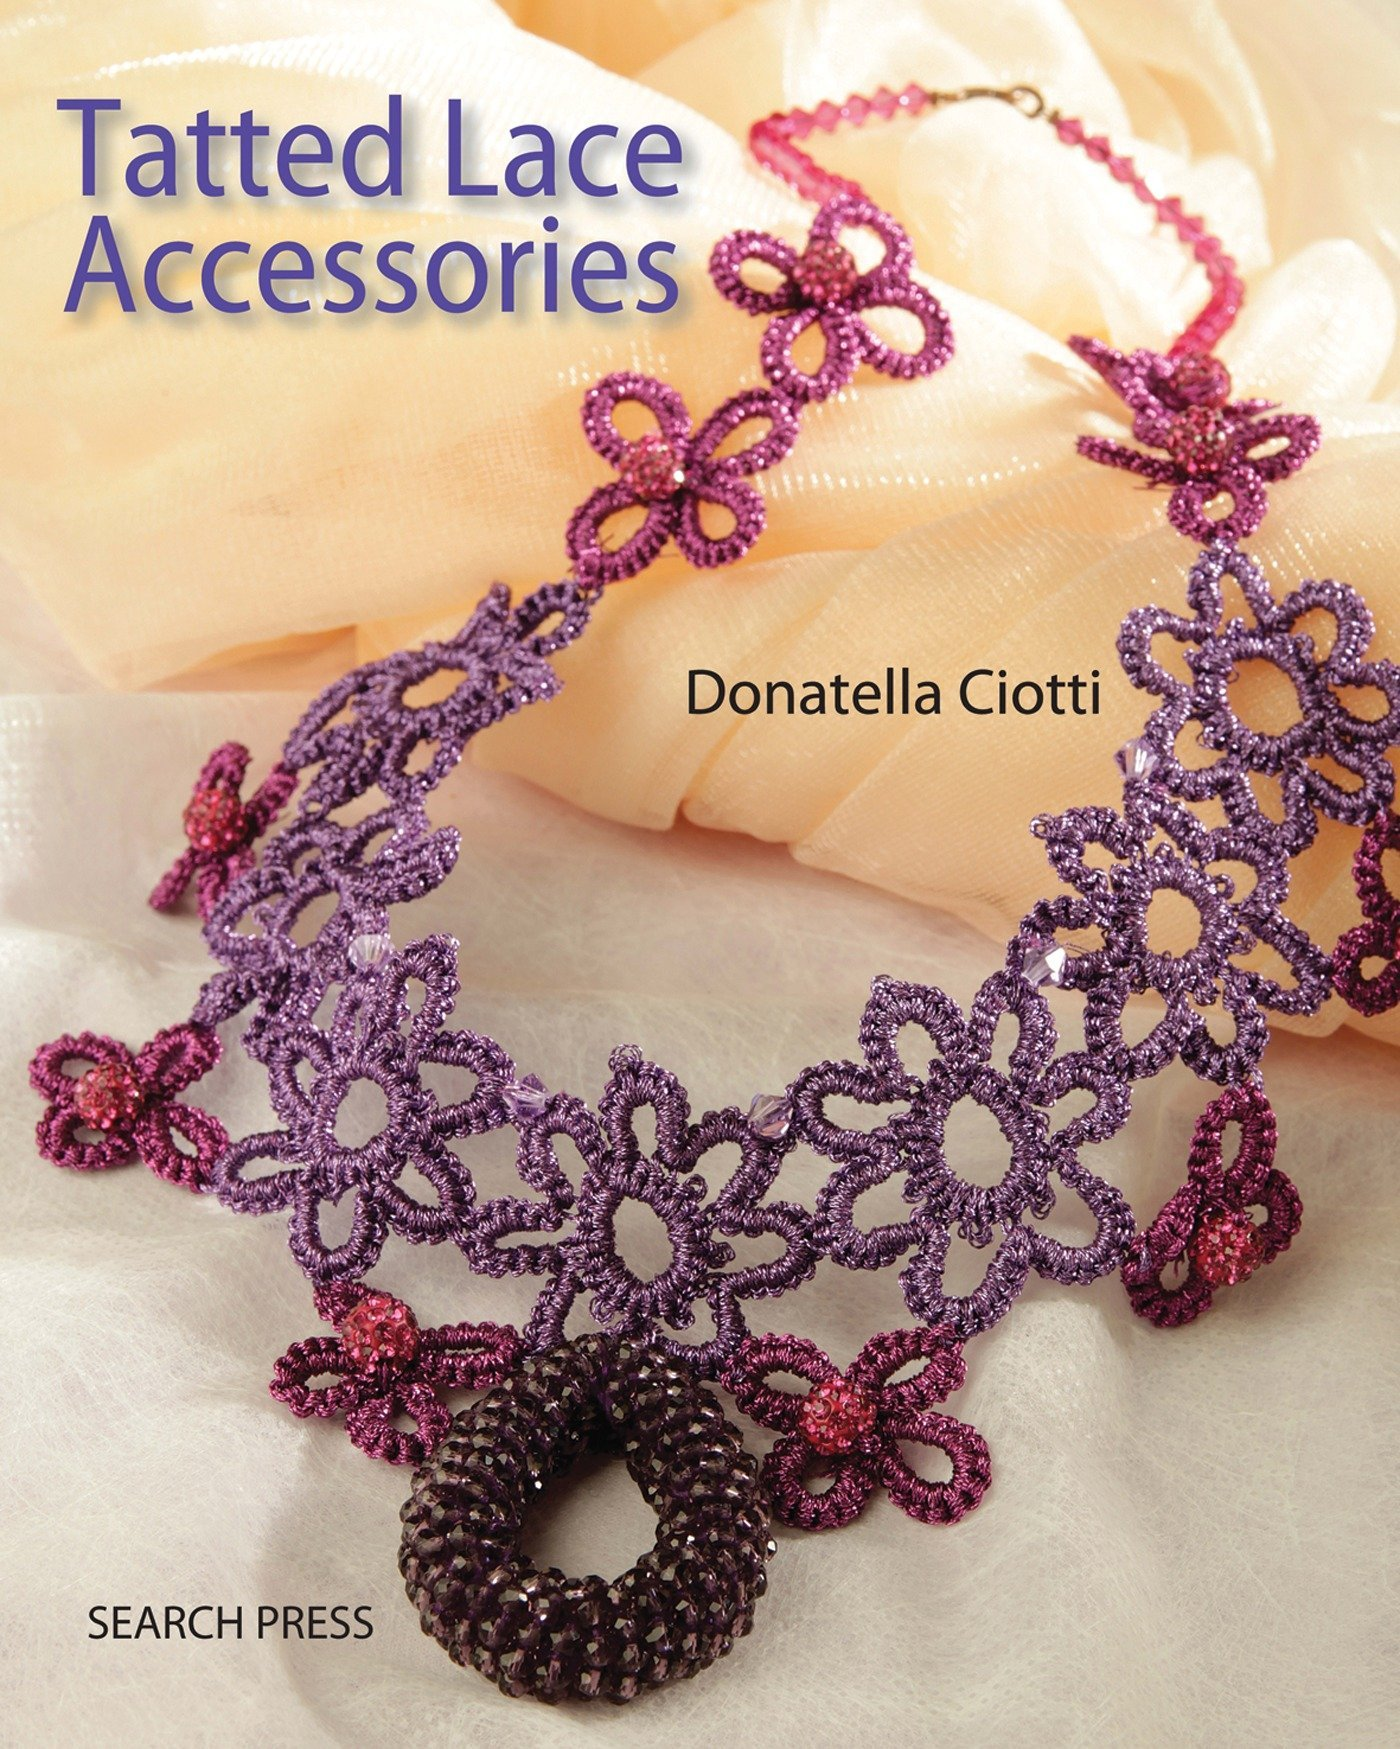 Tatted Lace Accessories